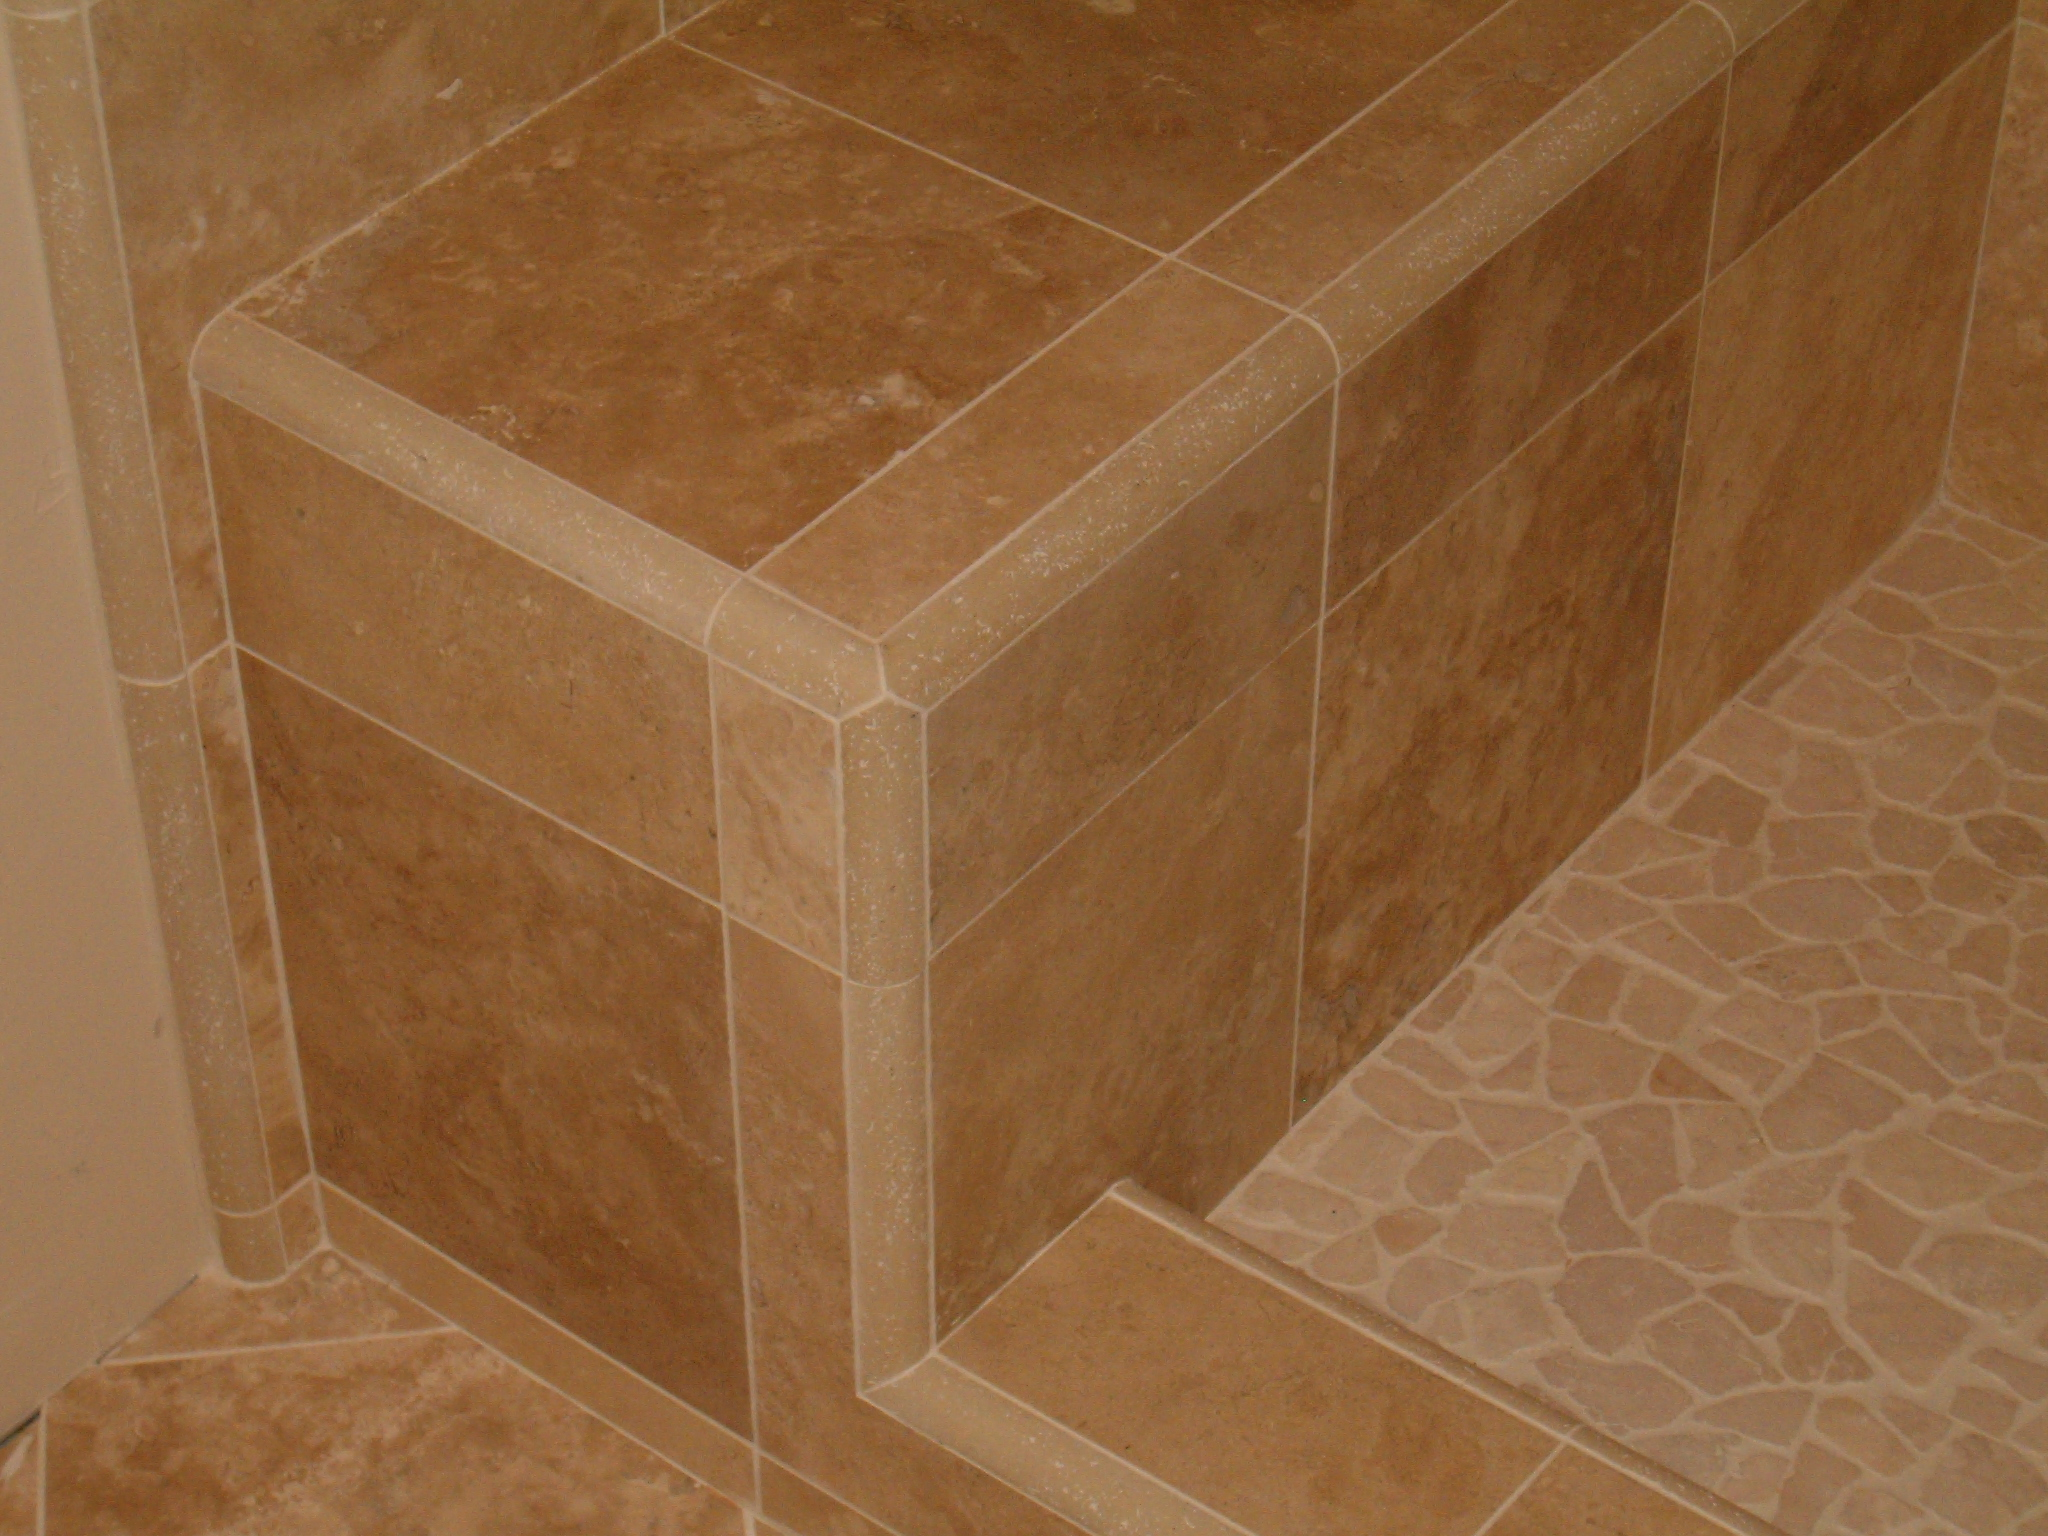 Of posts ceramic tile advice forums john bridge ceramic tile - Miter 3 Quarter Rounds At A 120 Degree Angle To Each Other